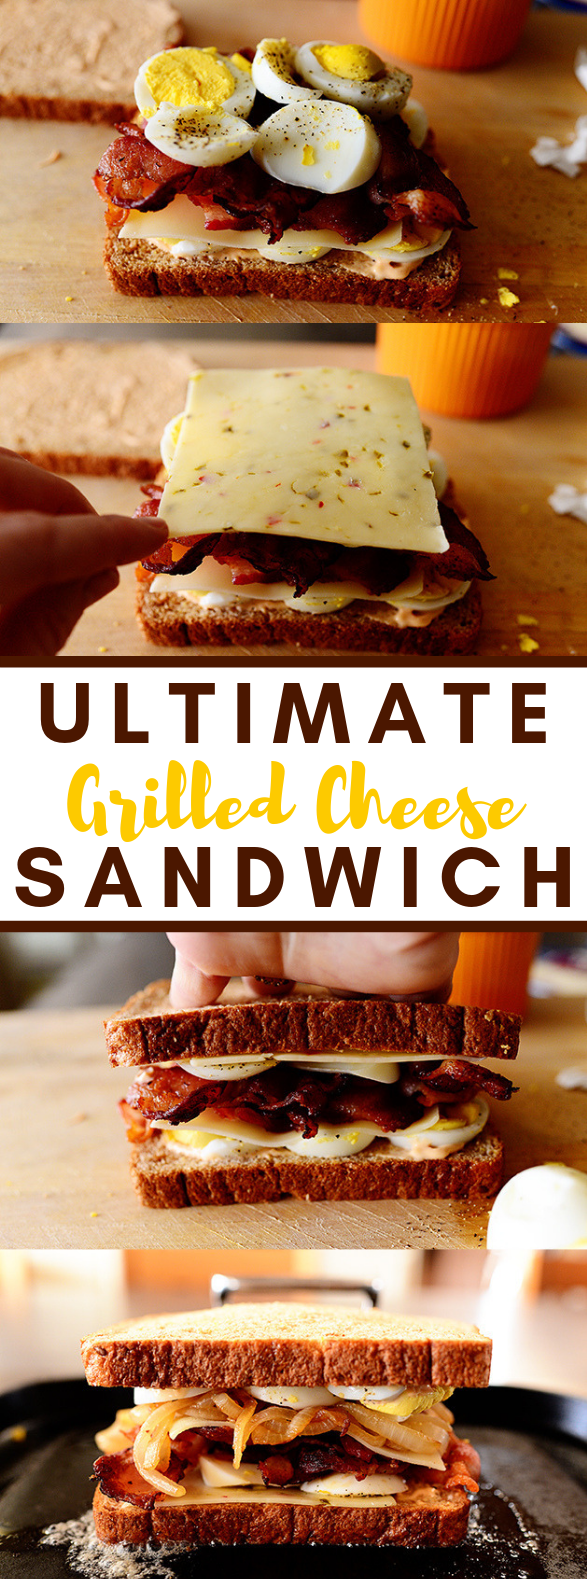 Ultimate Grilled Cheese Sandwich #diet #healthy